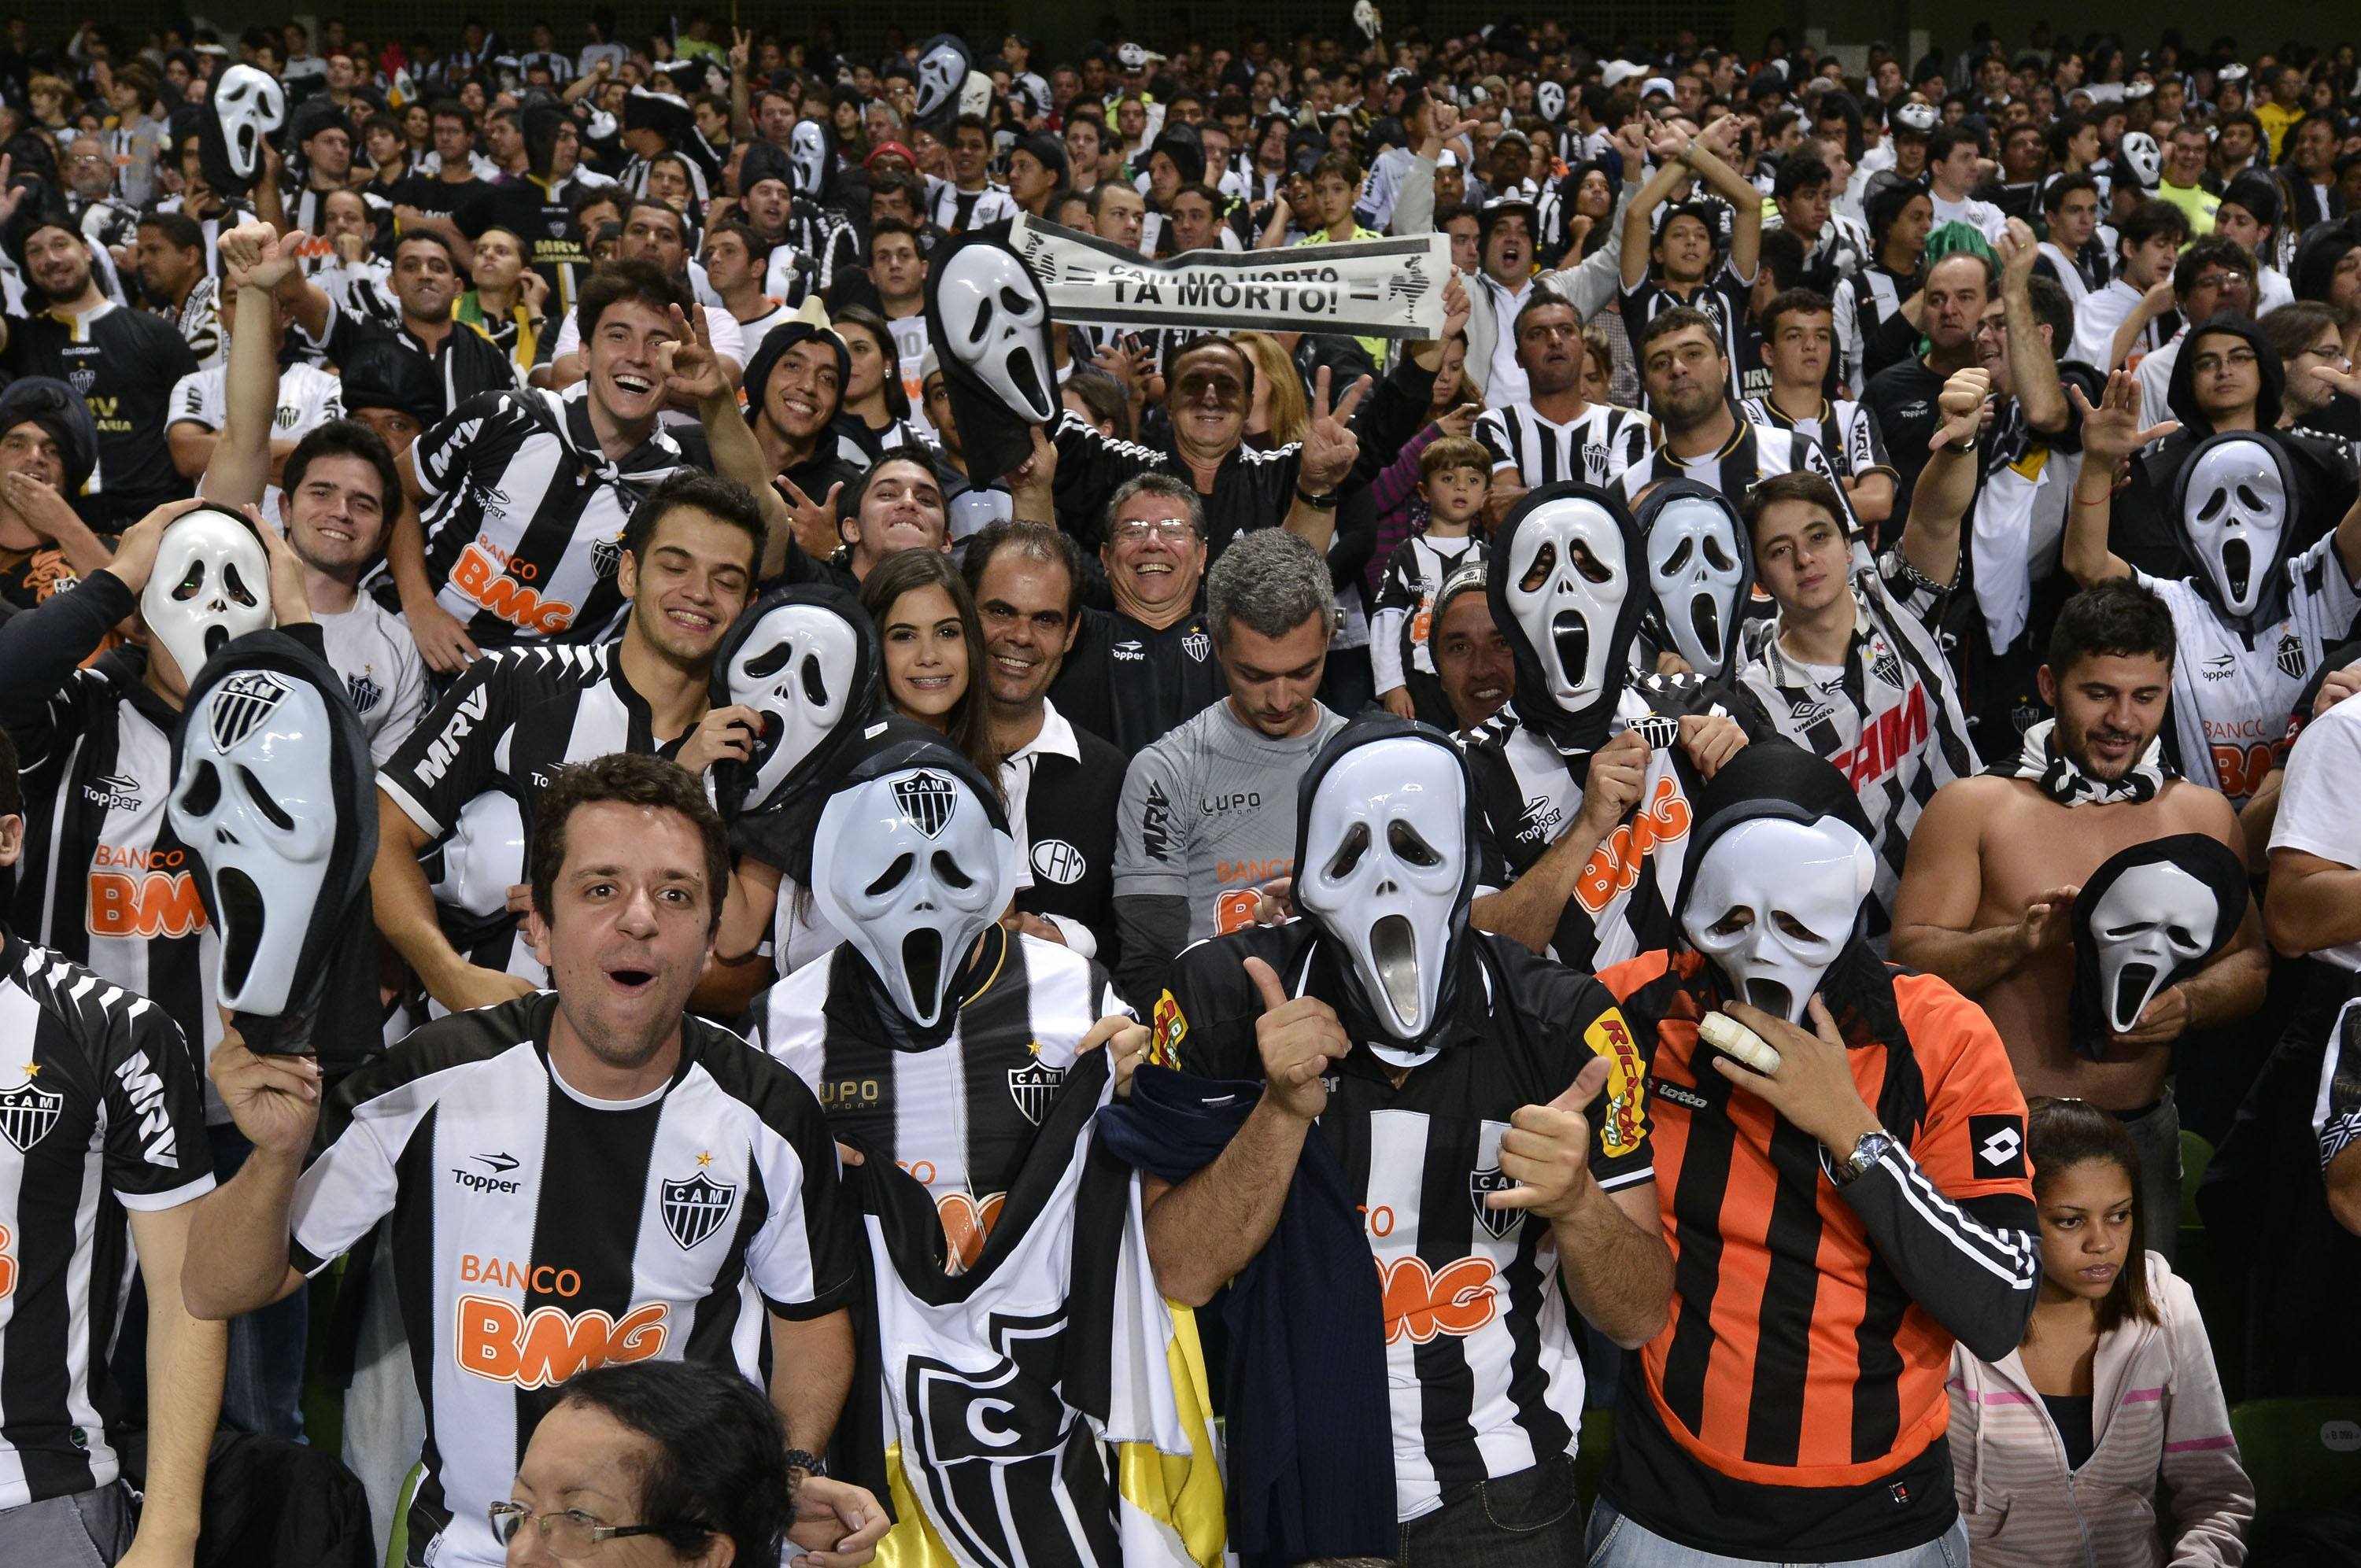 Torcida do Galo (Foto: Getty Images)